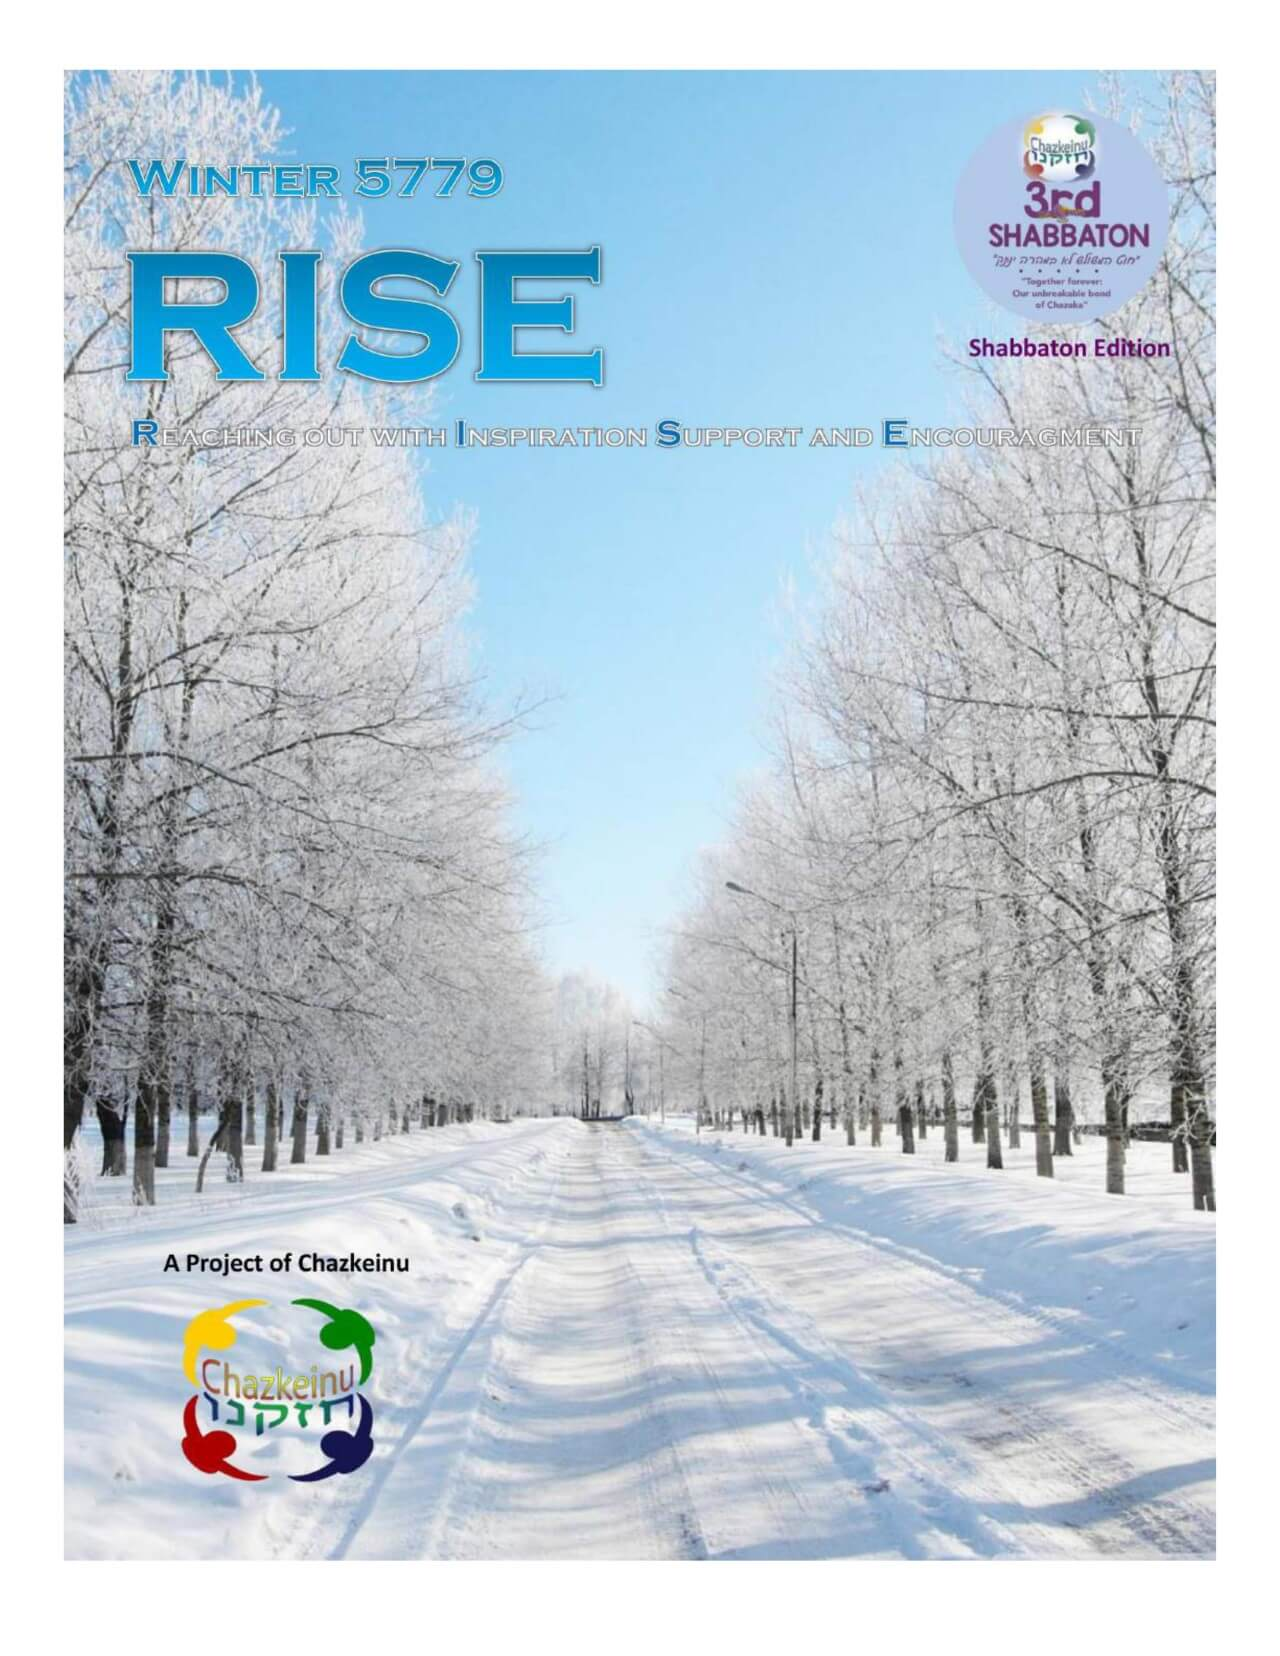 RISE Newsletter – Winter 5779 Edition